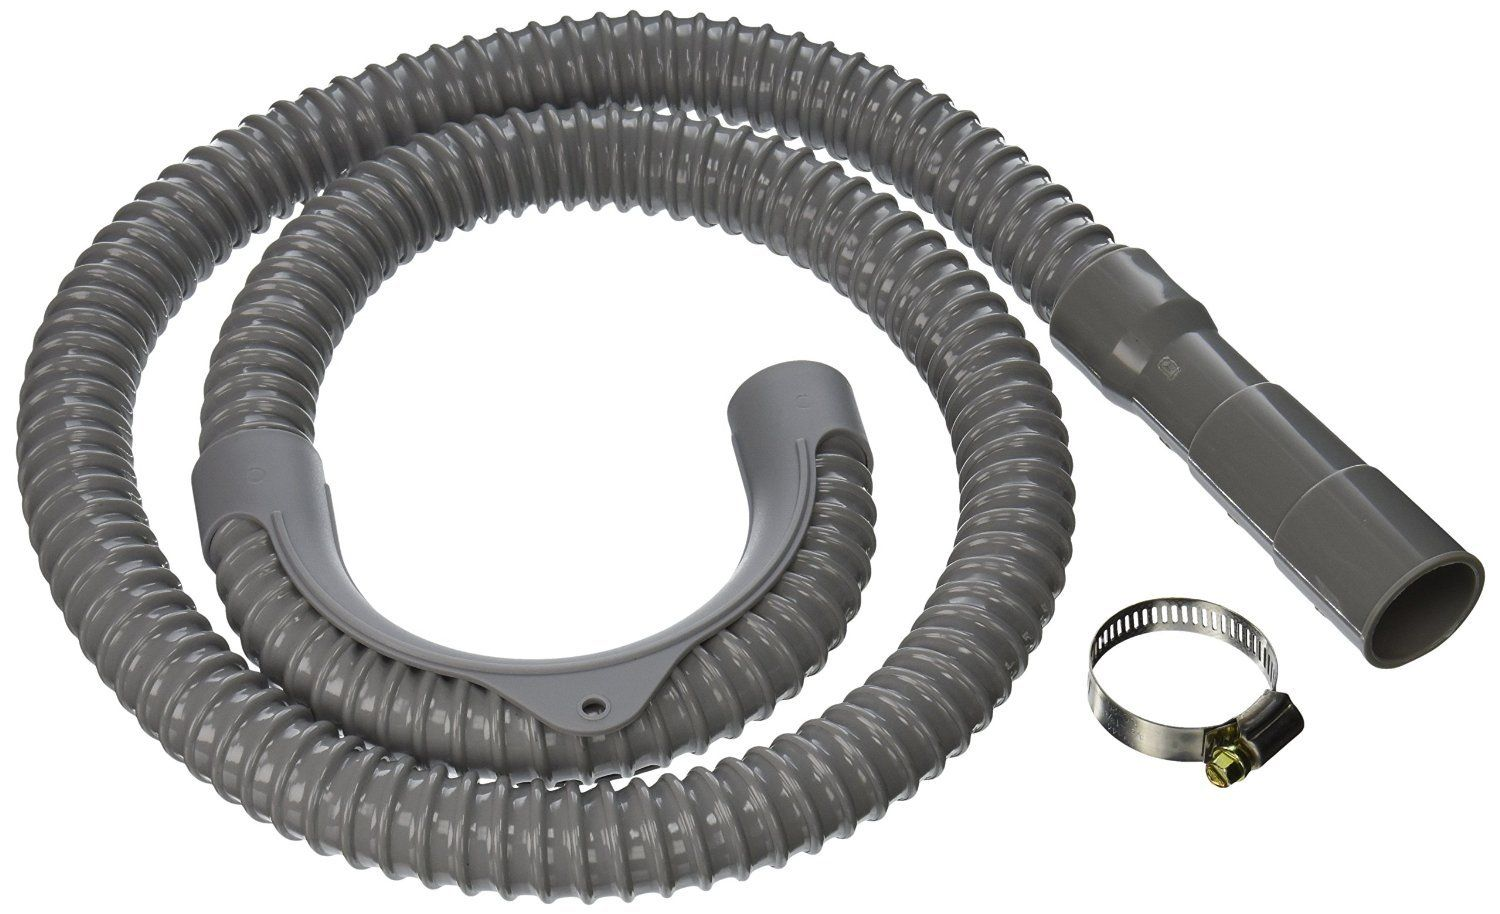 8 Ft Long Washing Machine Drain Discharge Hose Awesome Products Selected By Anna C Washing Machine Drain Hose Washing Machine Hose Automatic Washing Machine